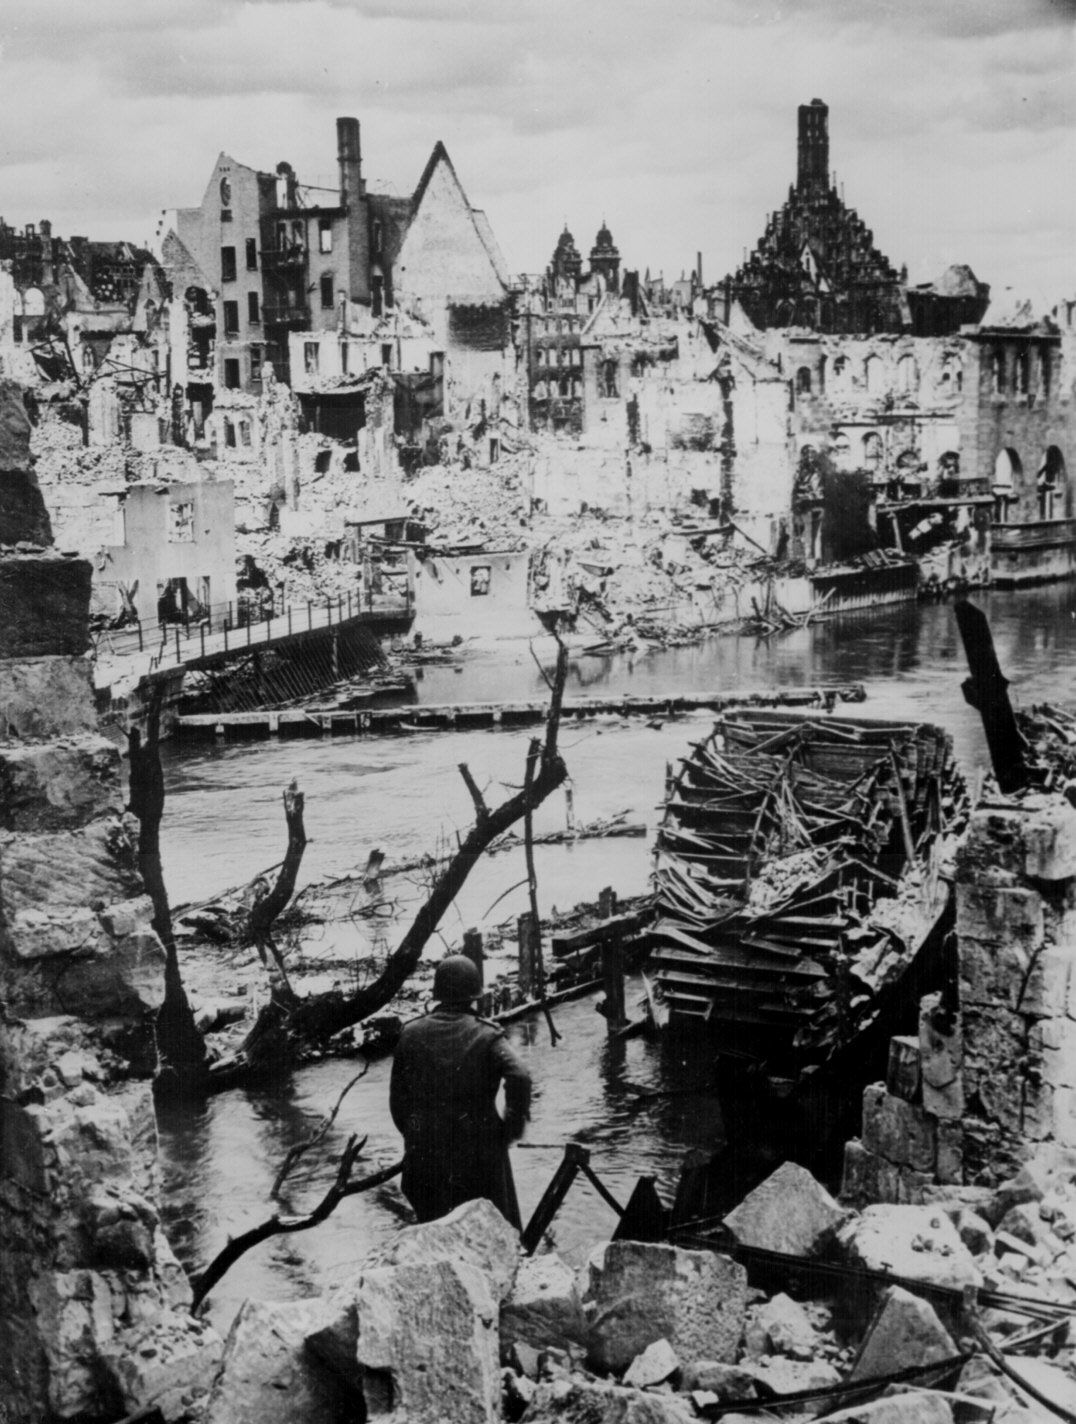 A US Army soldier observing the damage done to an industrial town near Nuremberg, April 1945